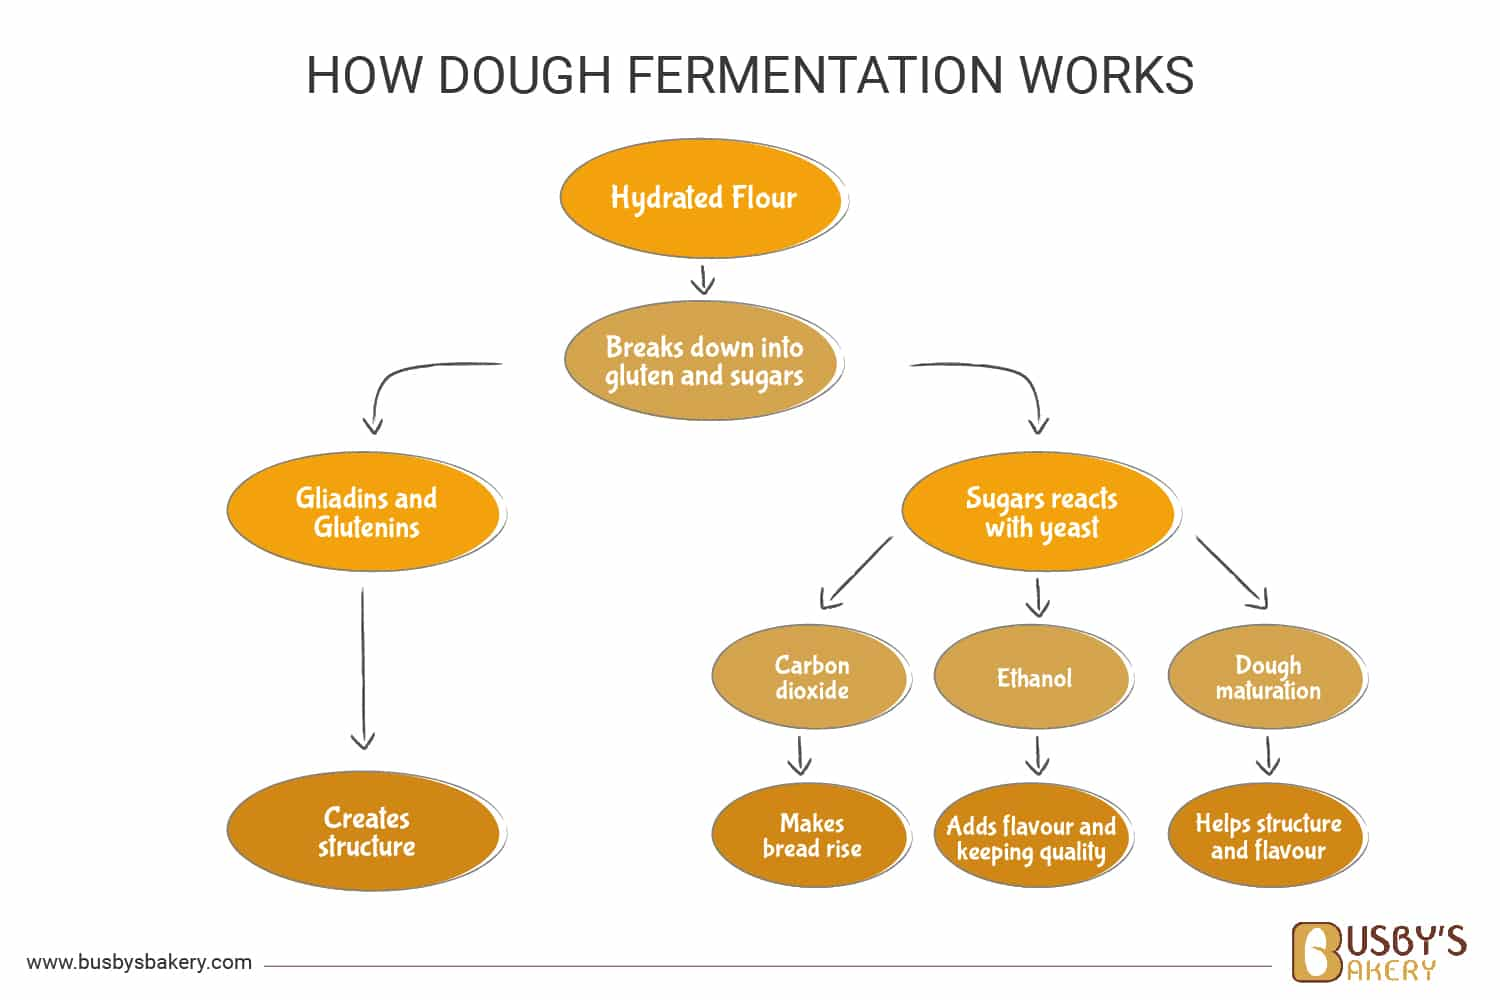 How dough fermentation works diagram